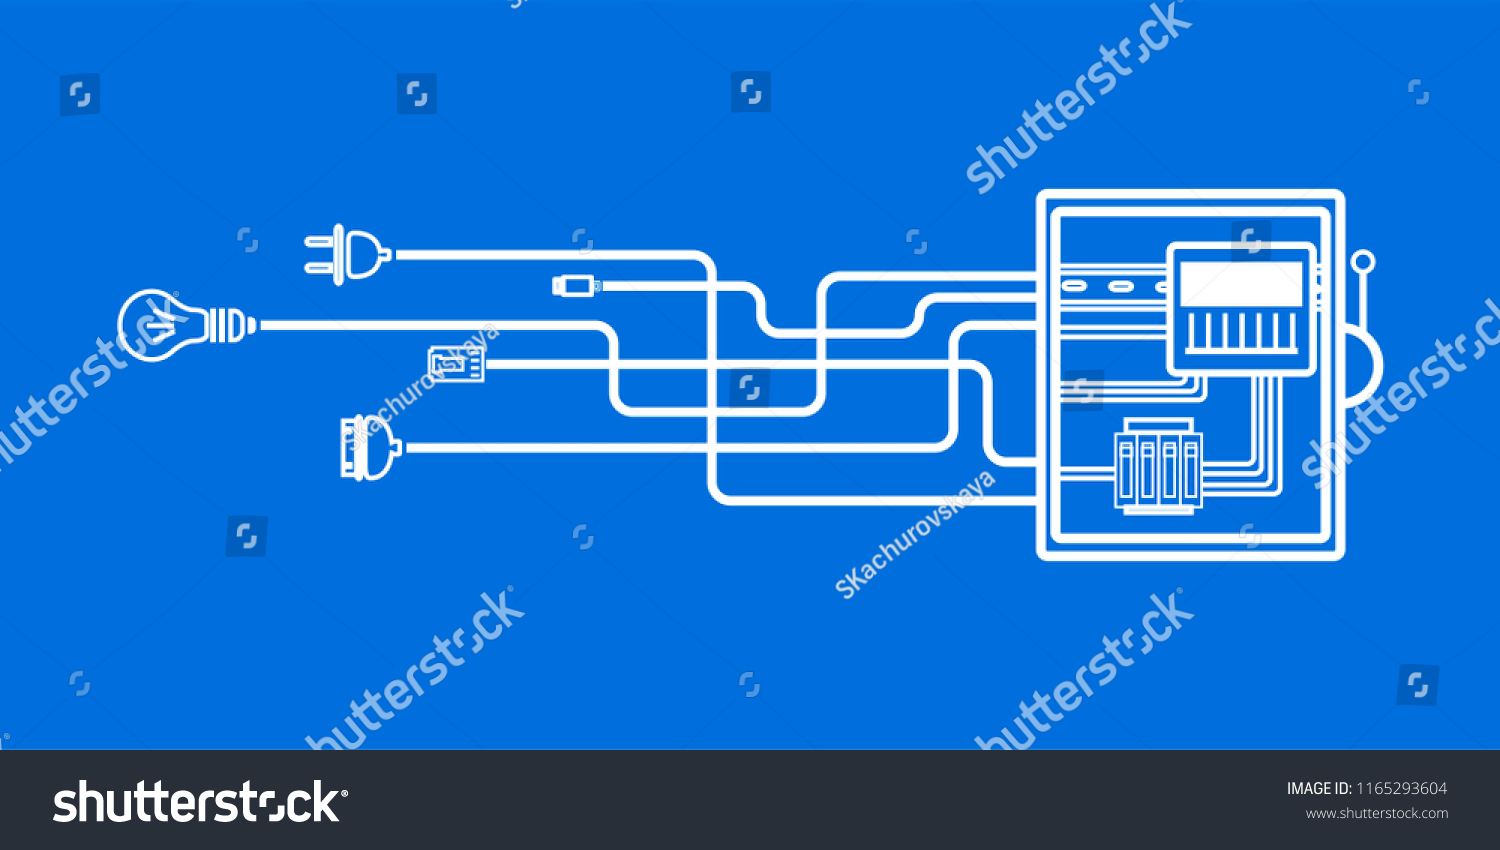 Electrical Panel Switch Wires Electric Meter Stock Vector Royalty Wiring Diagram With In Box On Blue Background